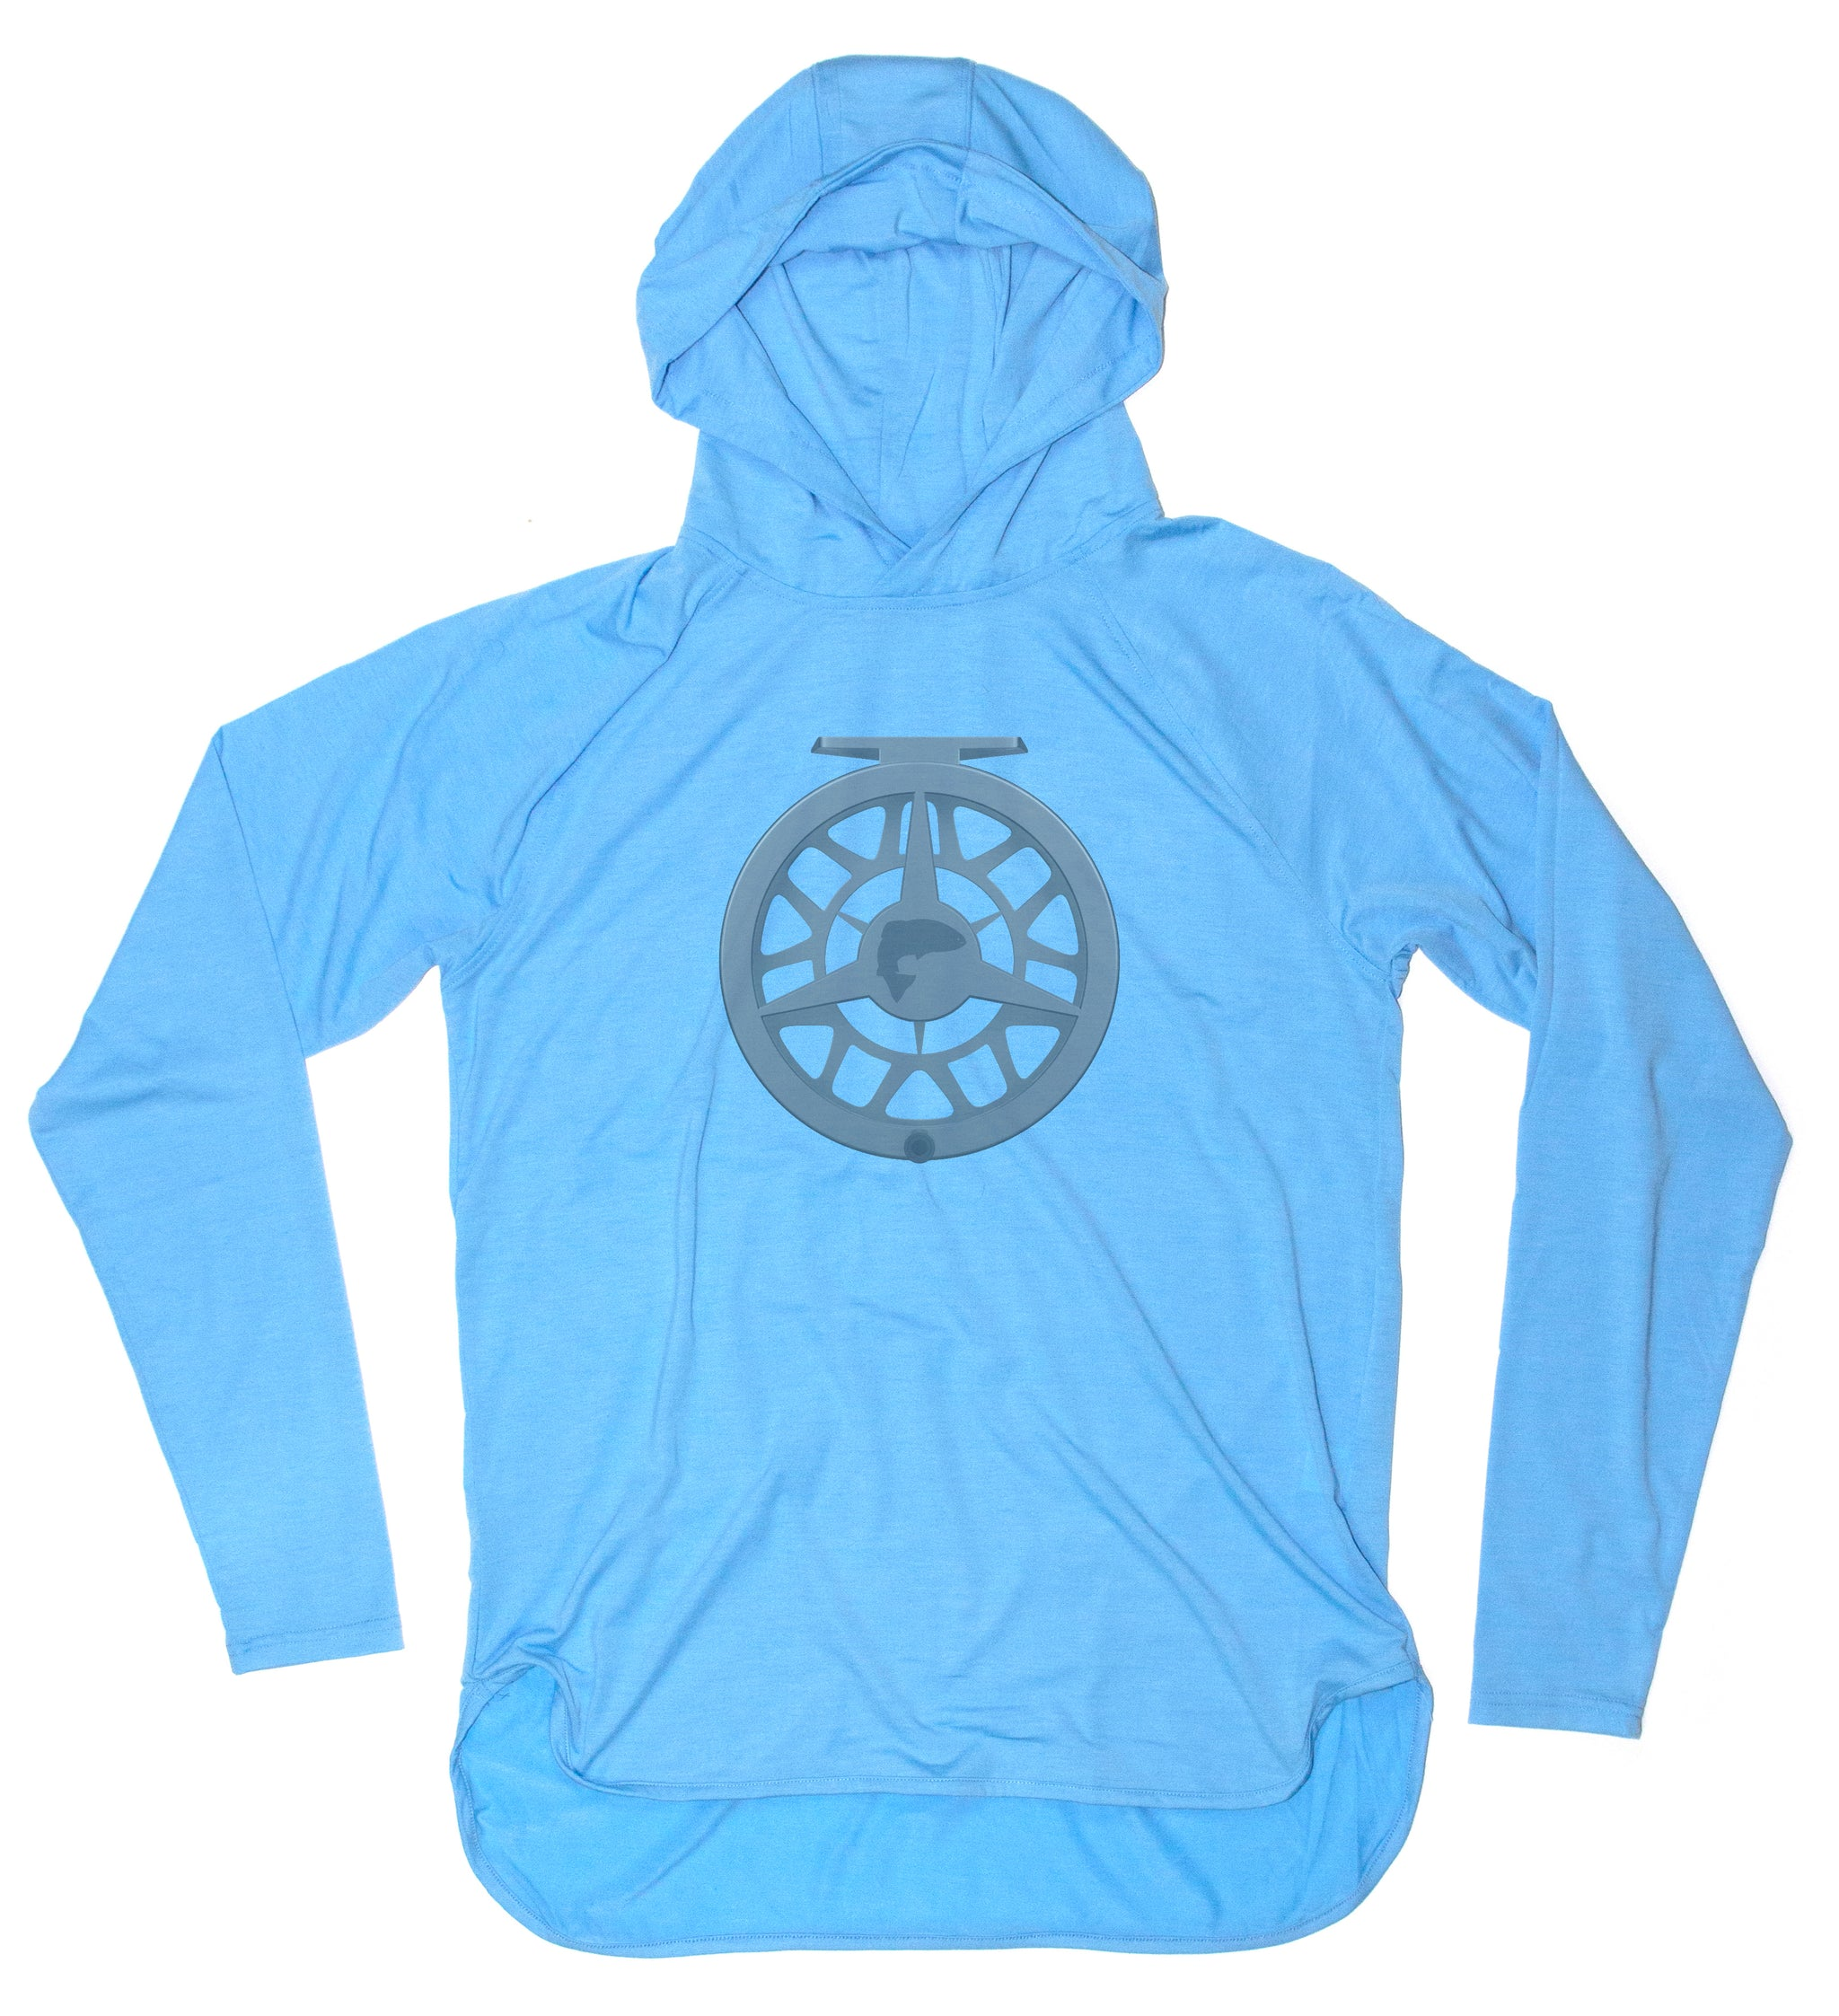 Xtreme Performance Pullover Sun Hoodie - Reel - Unisex